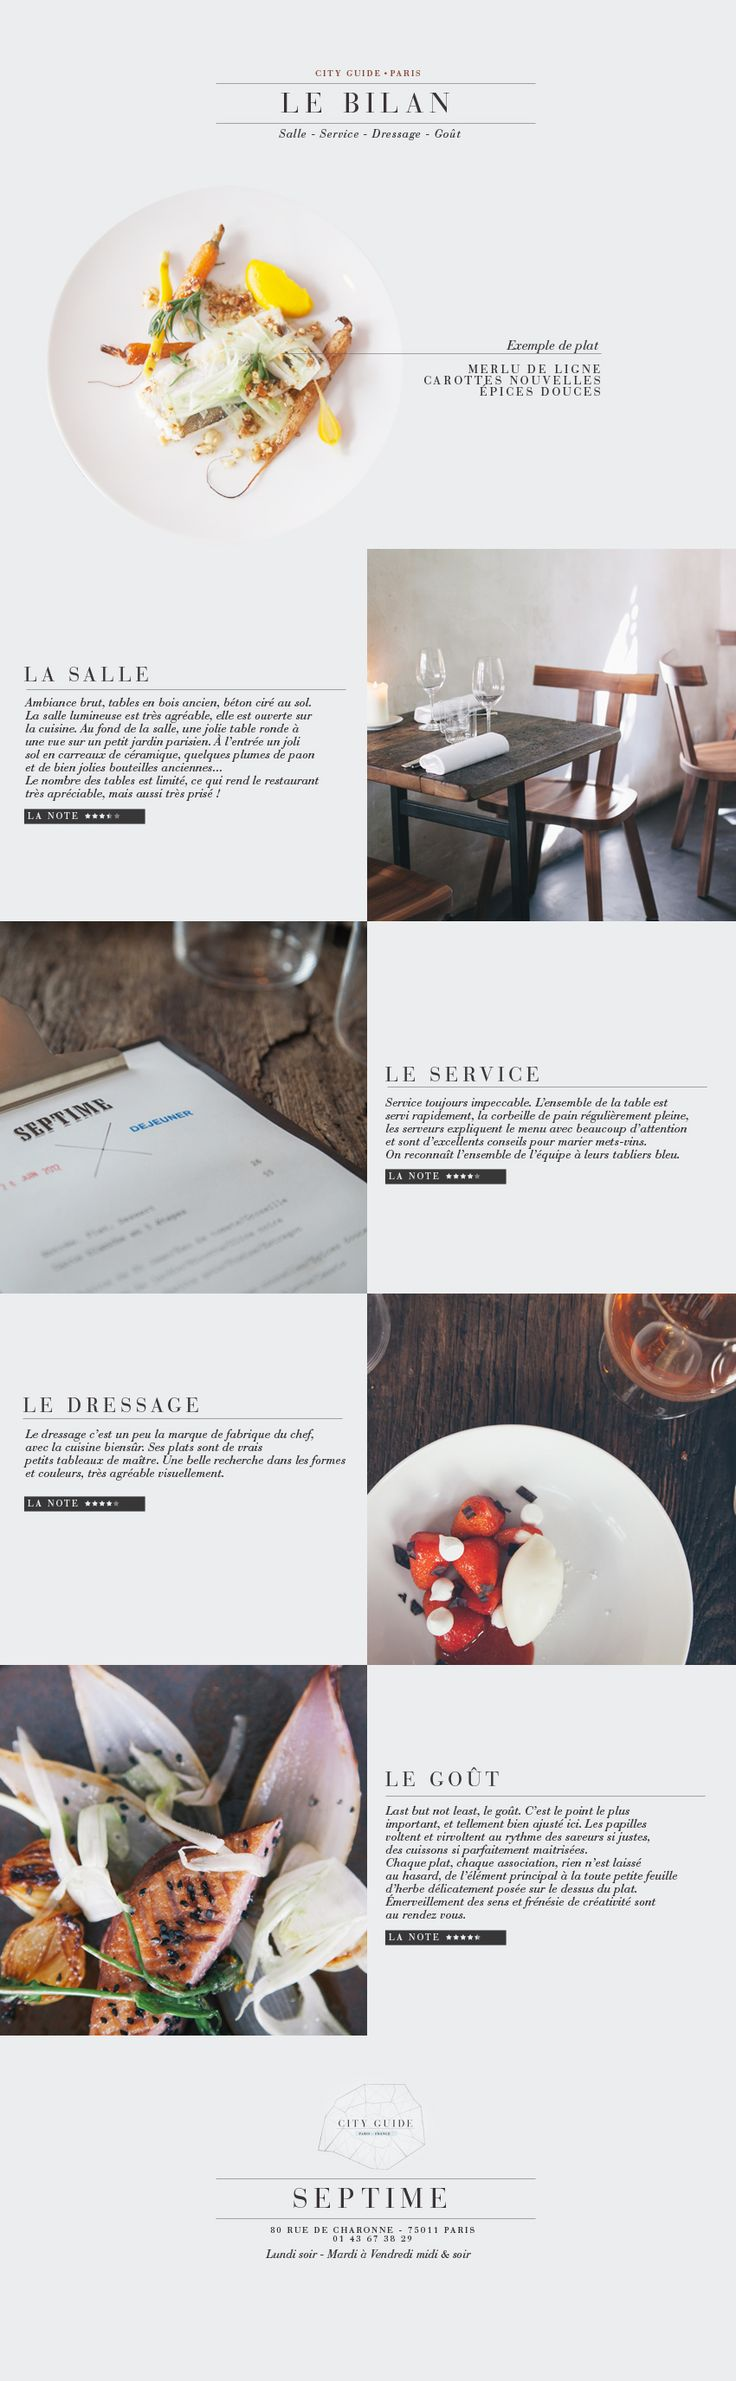 Griottes.fr_Septime12 #inspiration #creativity #concept #art #art_direction #grid #layout #design #layout_design #graphic #graphic_layout #graphic_design #ui #ux #web #web_design #website #web_layout #responsive #responsive_design #responsive_layout #digital_design